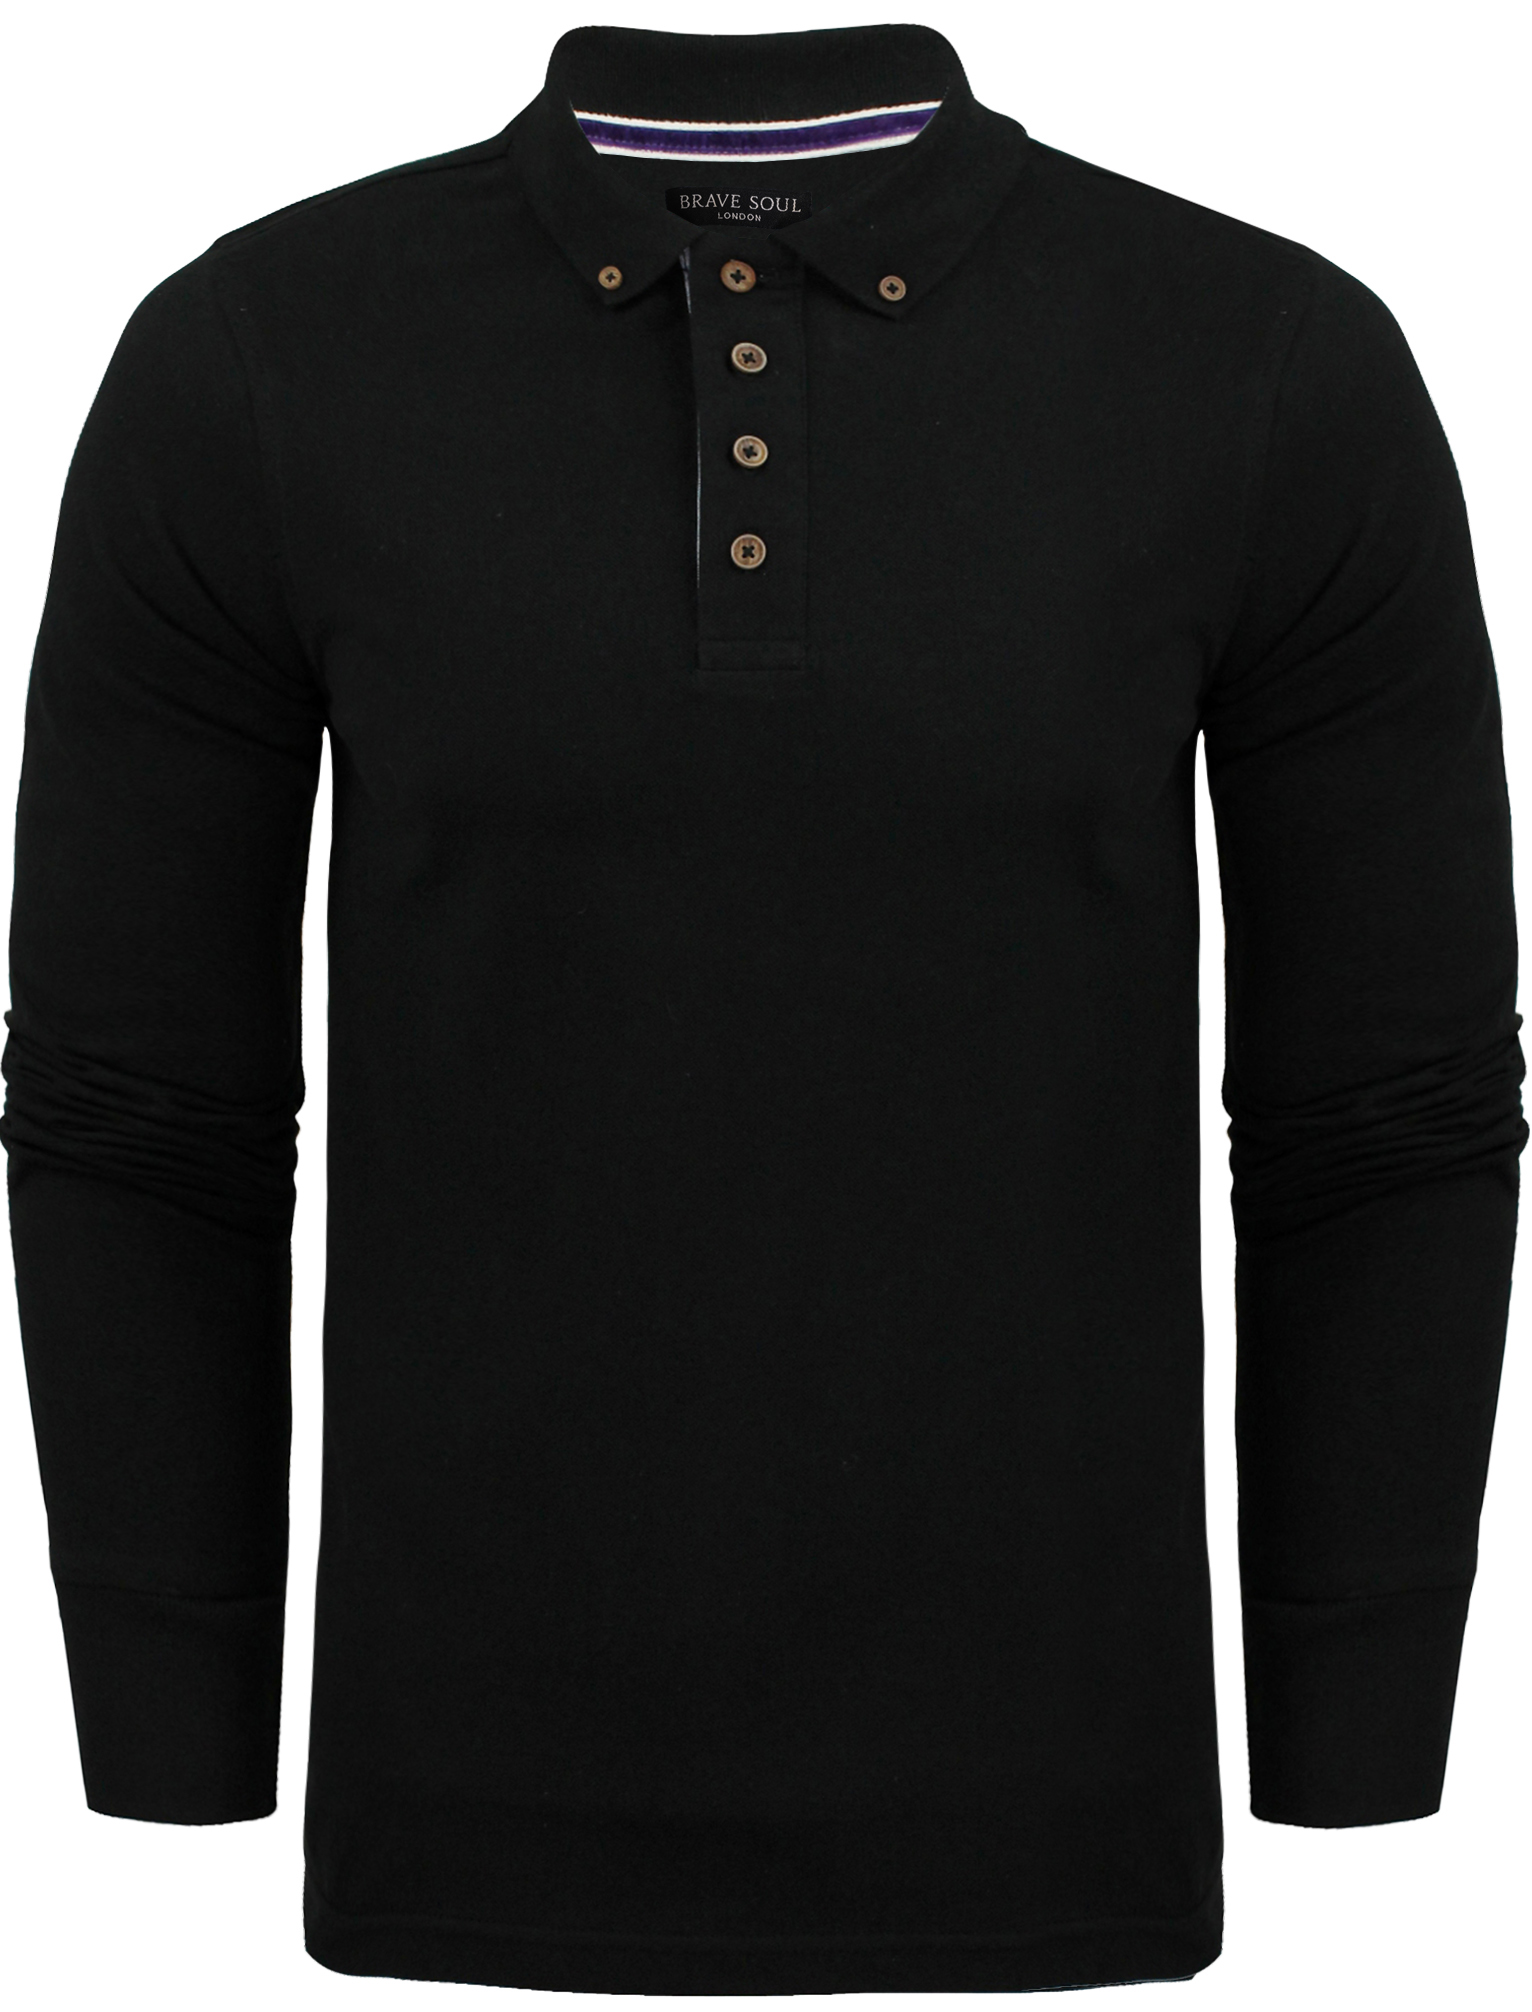 New Mens Cotton Rich Long Sleeved Polo T Shirt By Brave